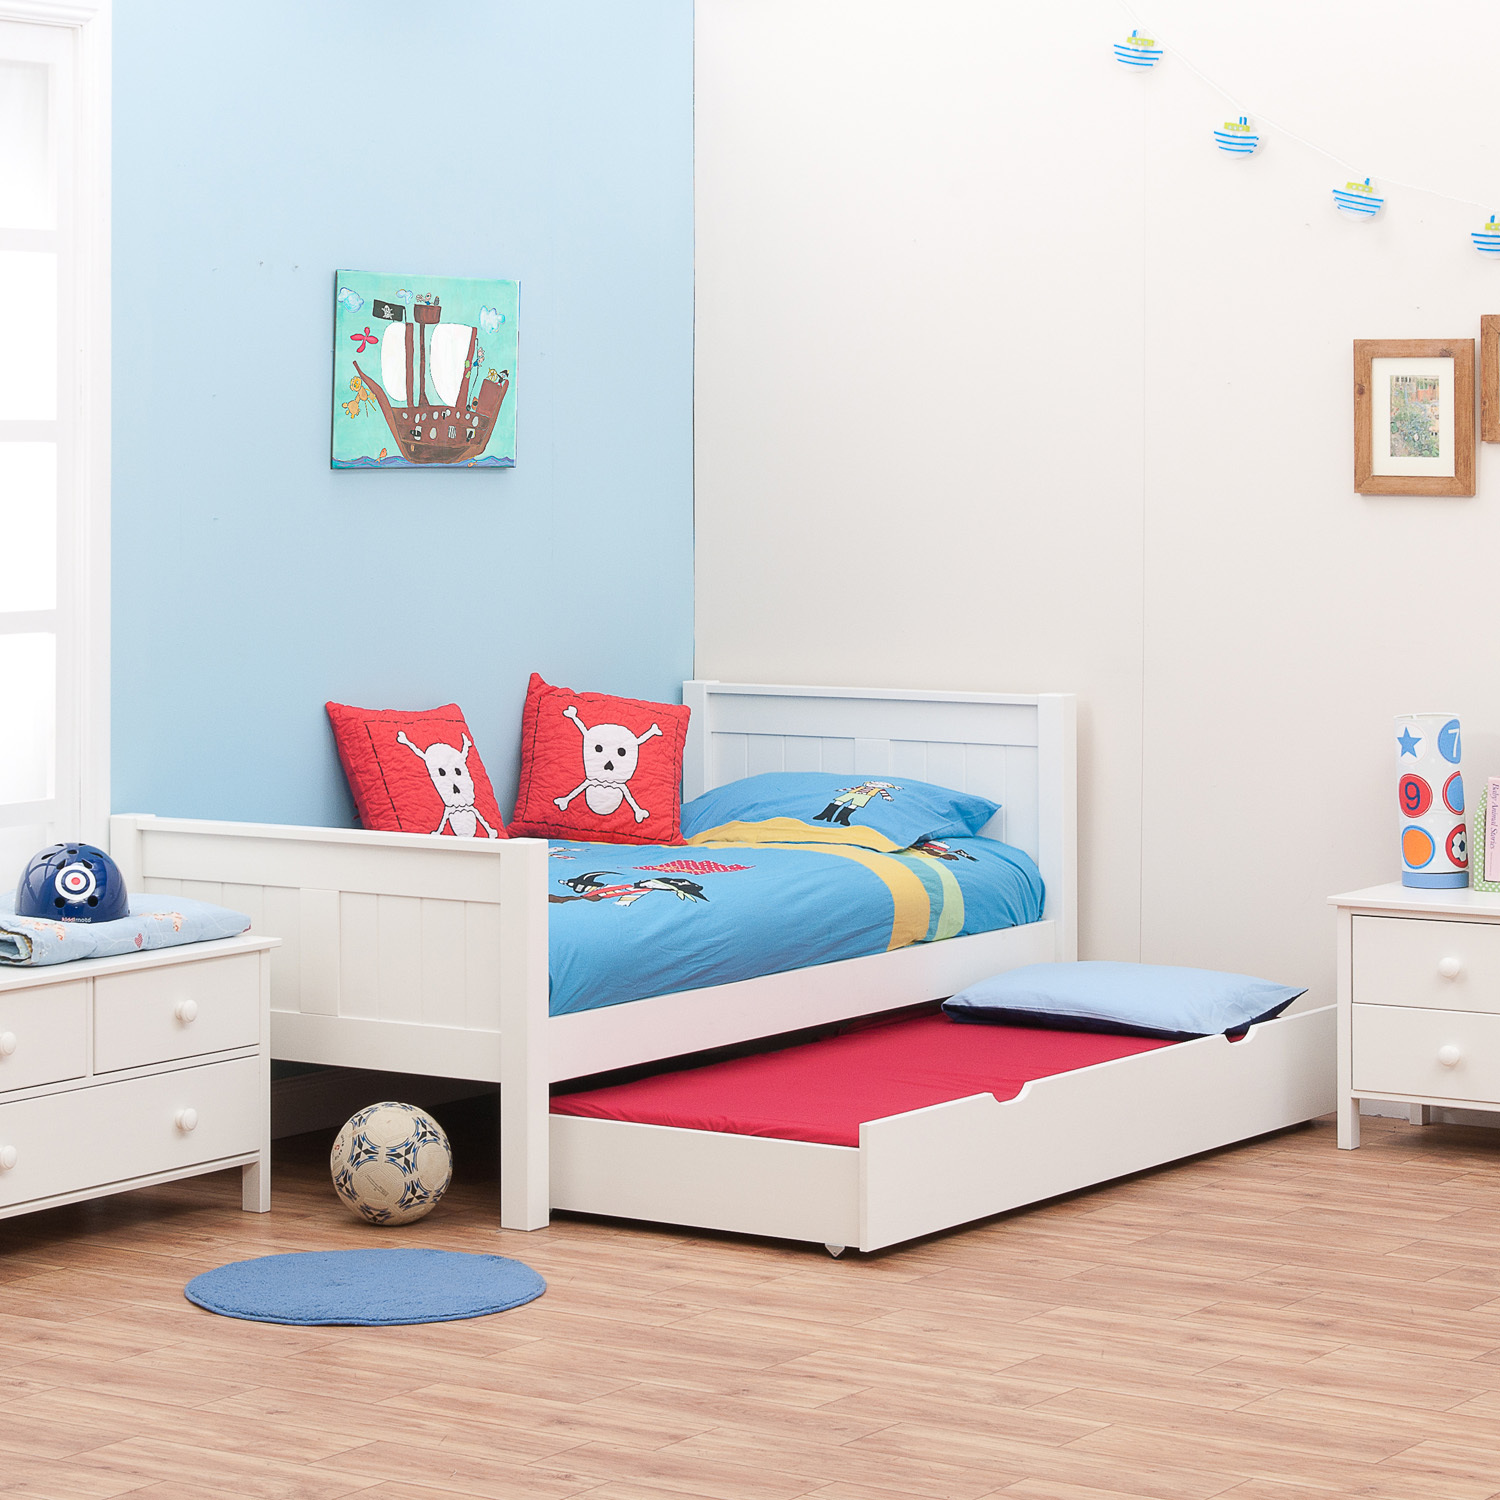 Classic single bed with trundle bed by stompa Futon for kids room